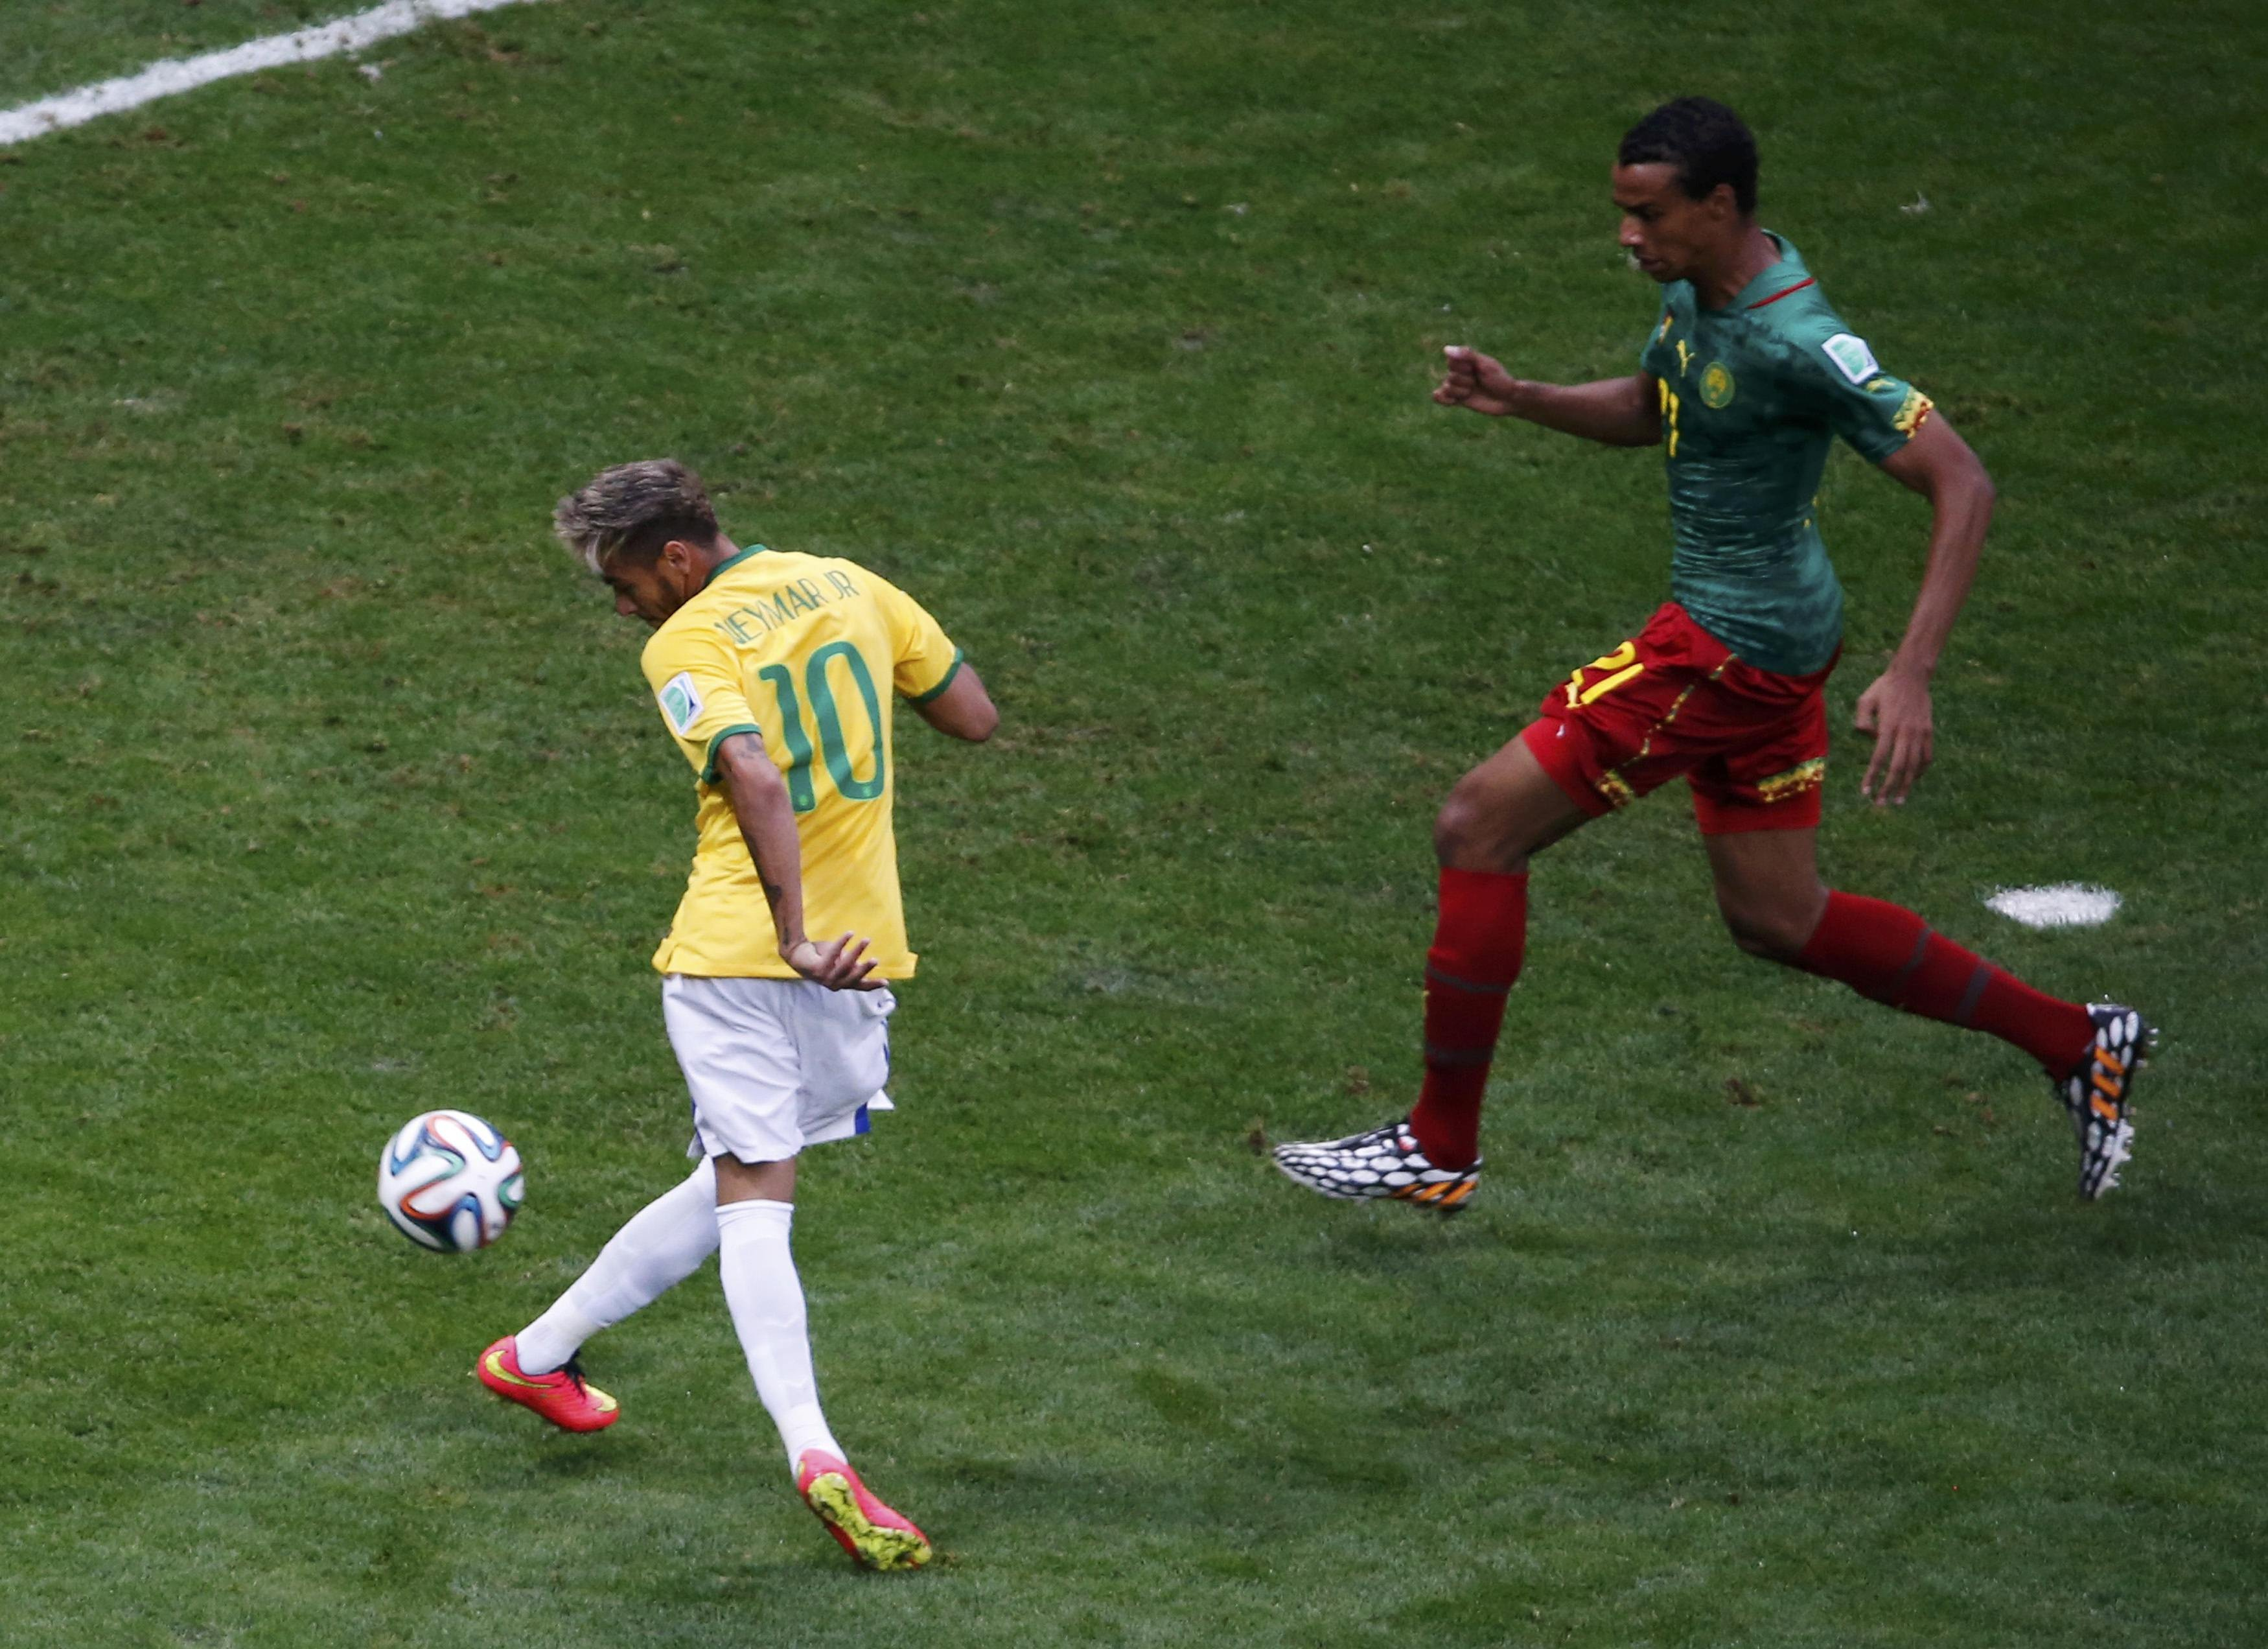 Brazil's Neymar shoots to score against Cameroon during their 2014 World Cup Group A soccer match at the Brasilia national stadium in Brasilia, Brazil on June 23, 2014.